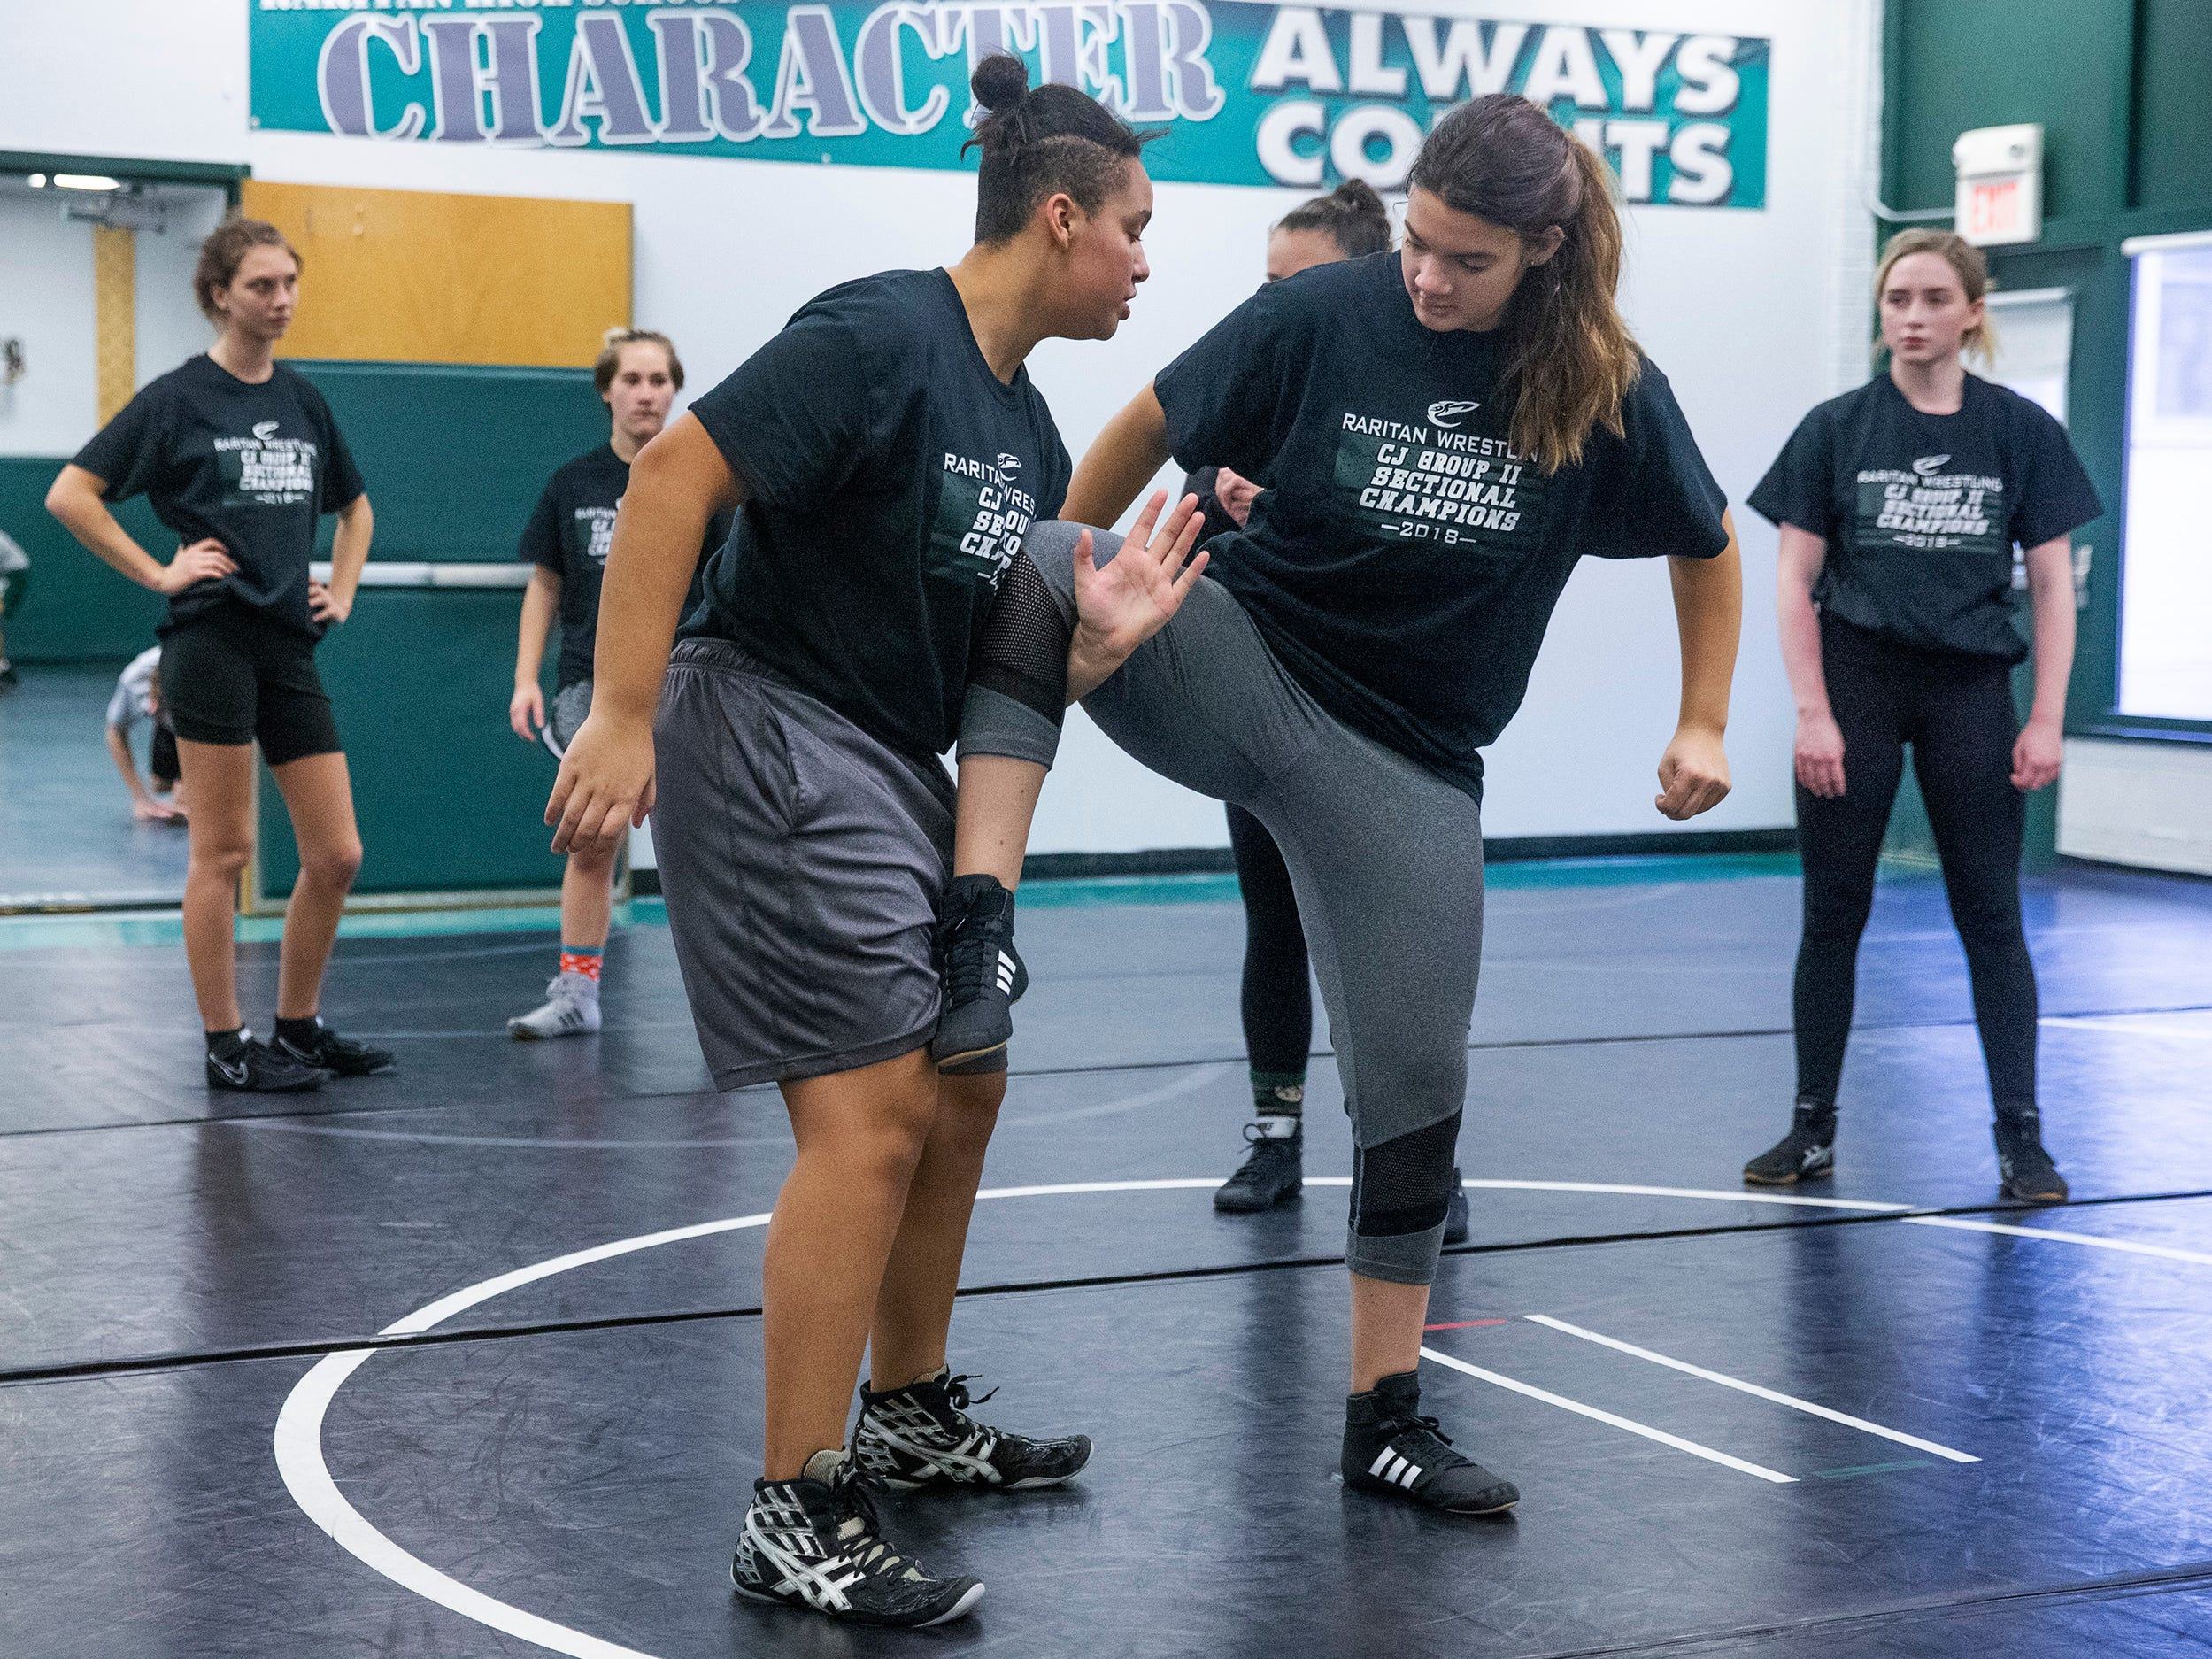 NJSIAA is offering wrestling for girls this year and they will participate in an all girls tournament at the end of the season. Raritan High School Wrestling is fielding nearly a  full girls team this year. While girls mostly practice separately from the boys, they are in a room next to the boys and frequent coaching sessions happen in the boys room to teach moves.